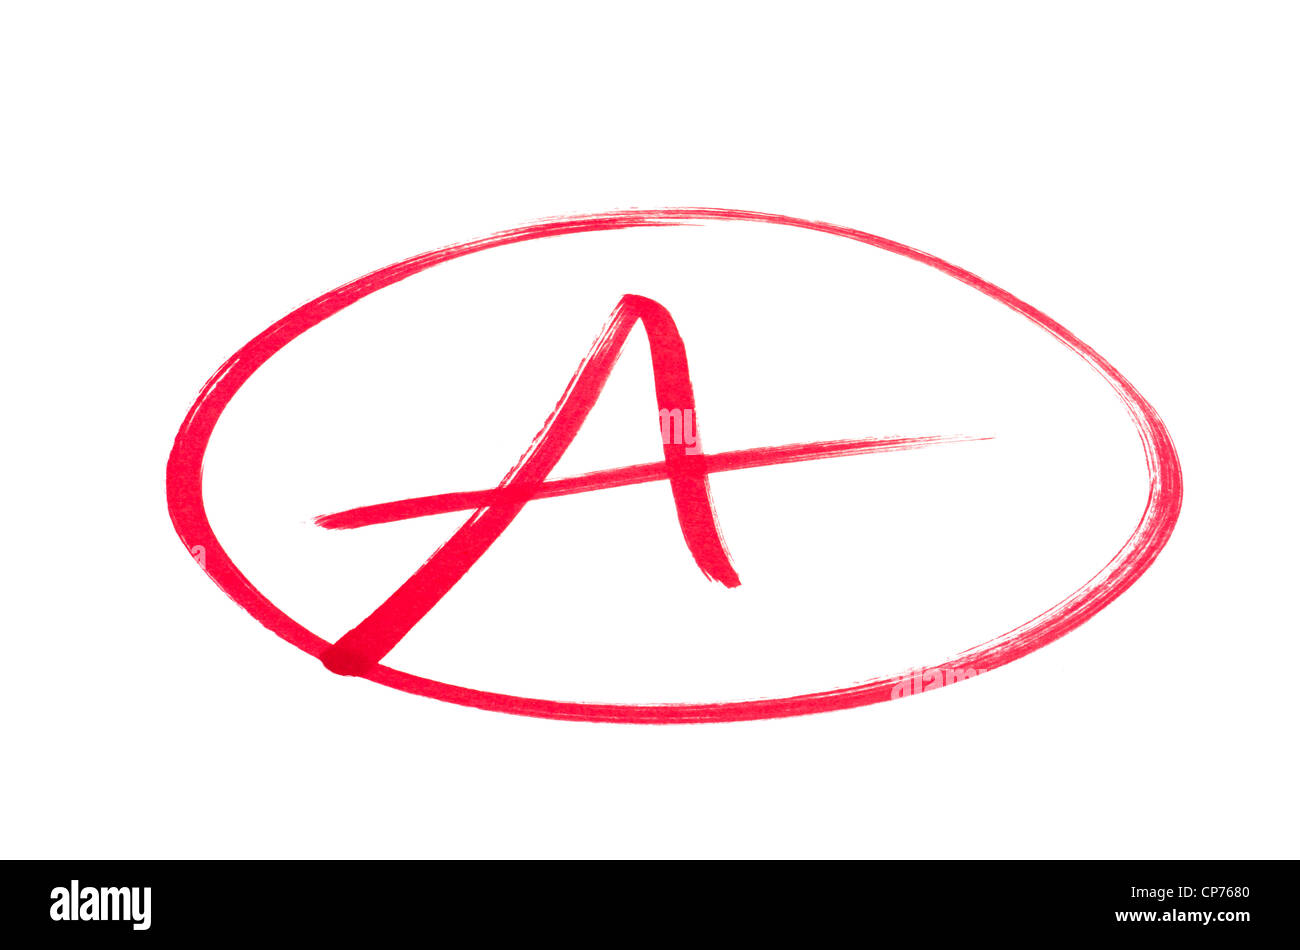 A handwritten grade A for an excellent achievements in red ink. Isolated on white. - Stock Image